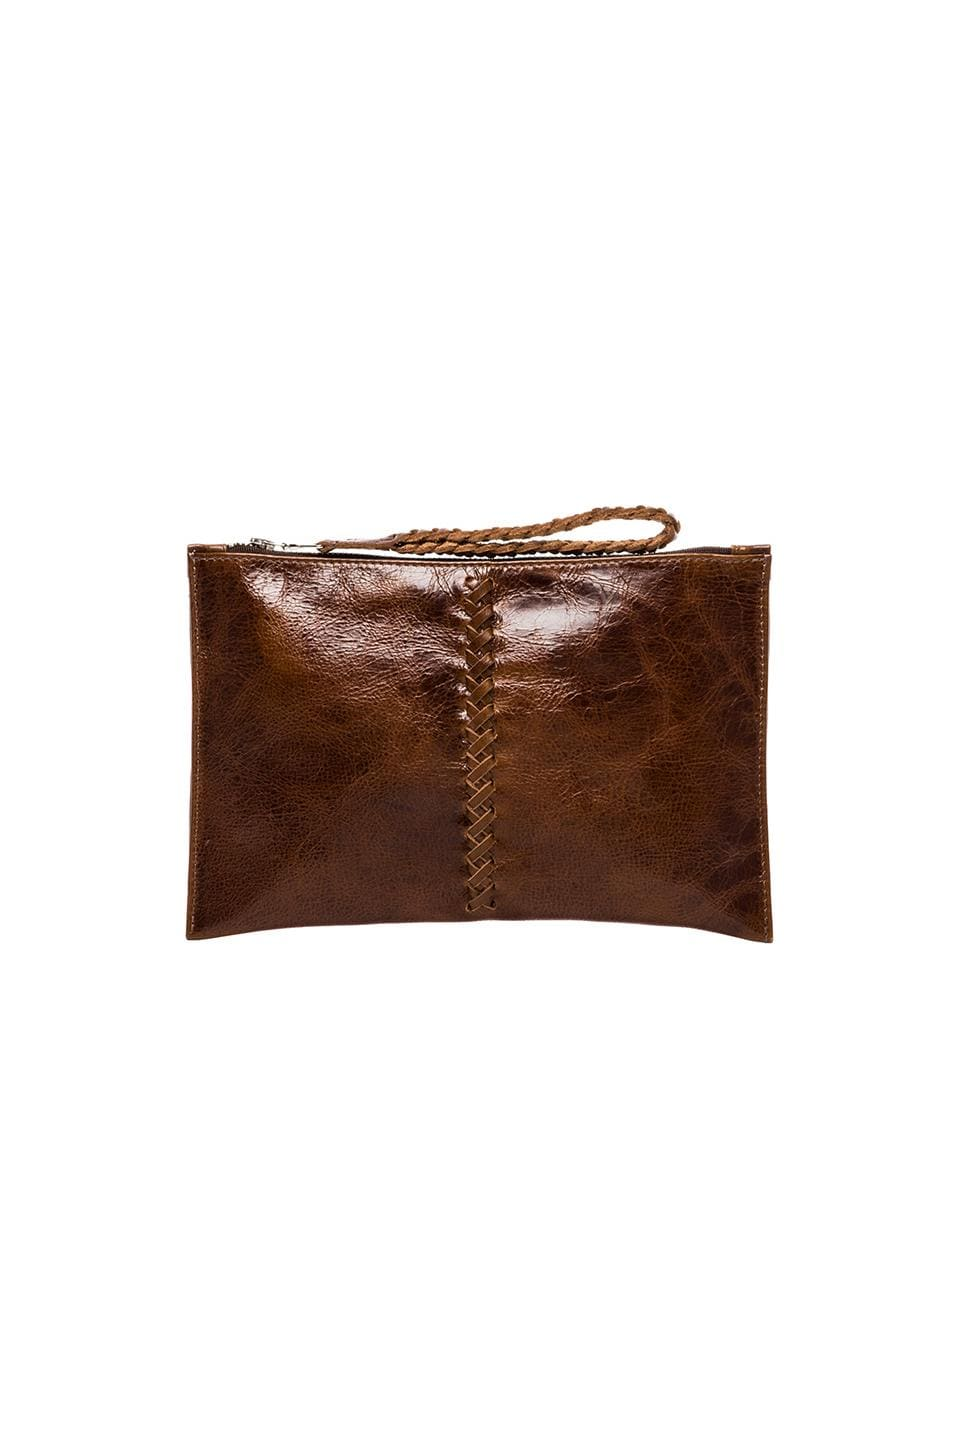 Tylie Small Crazy Horse Clutch in Saddle